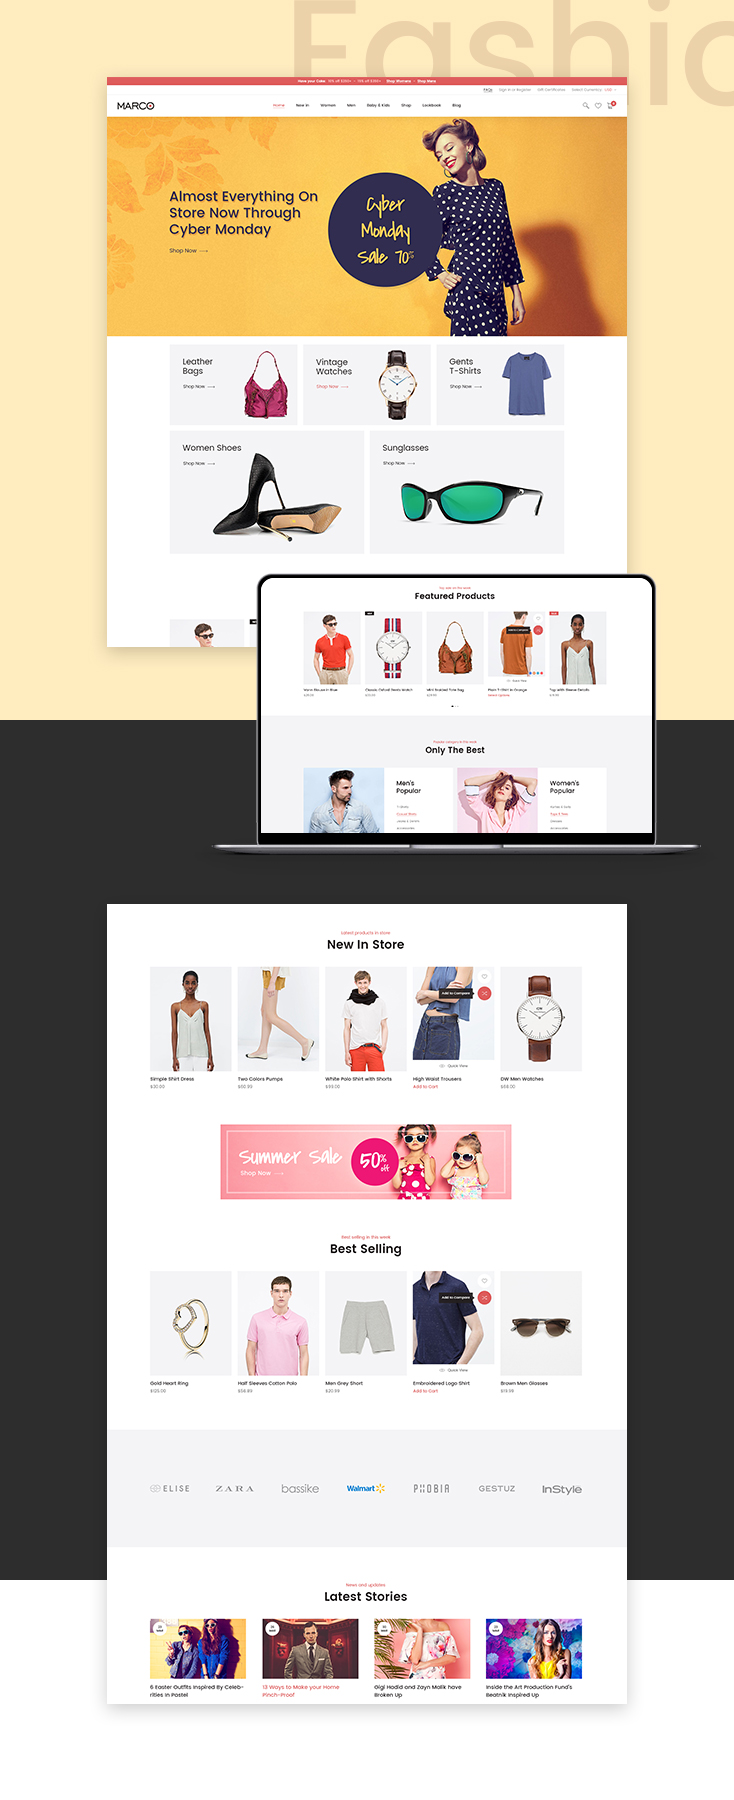 Marco Fashionage Shopify theme design